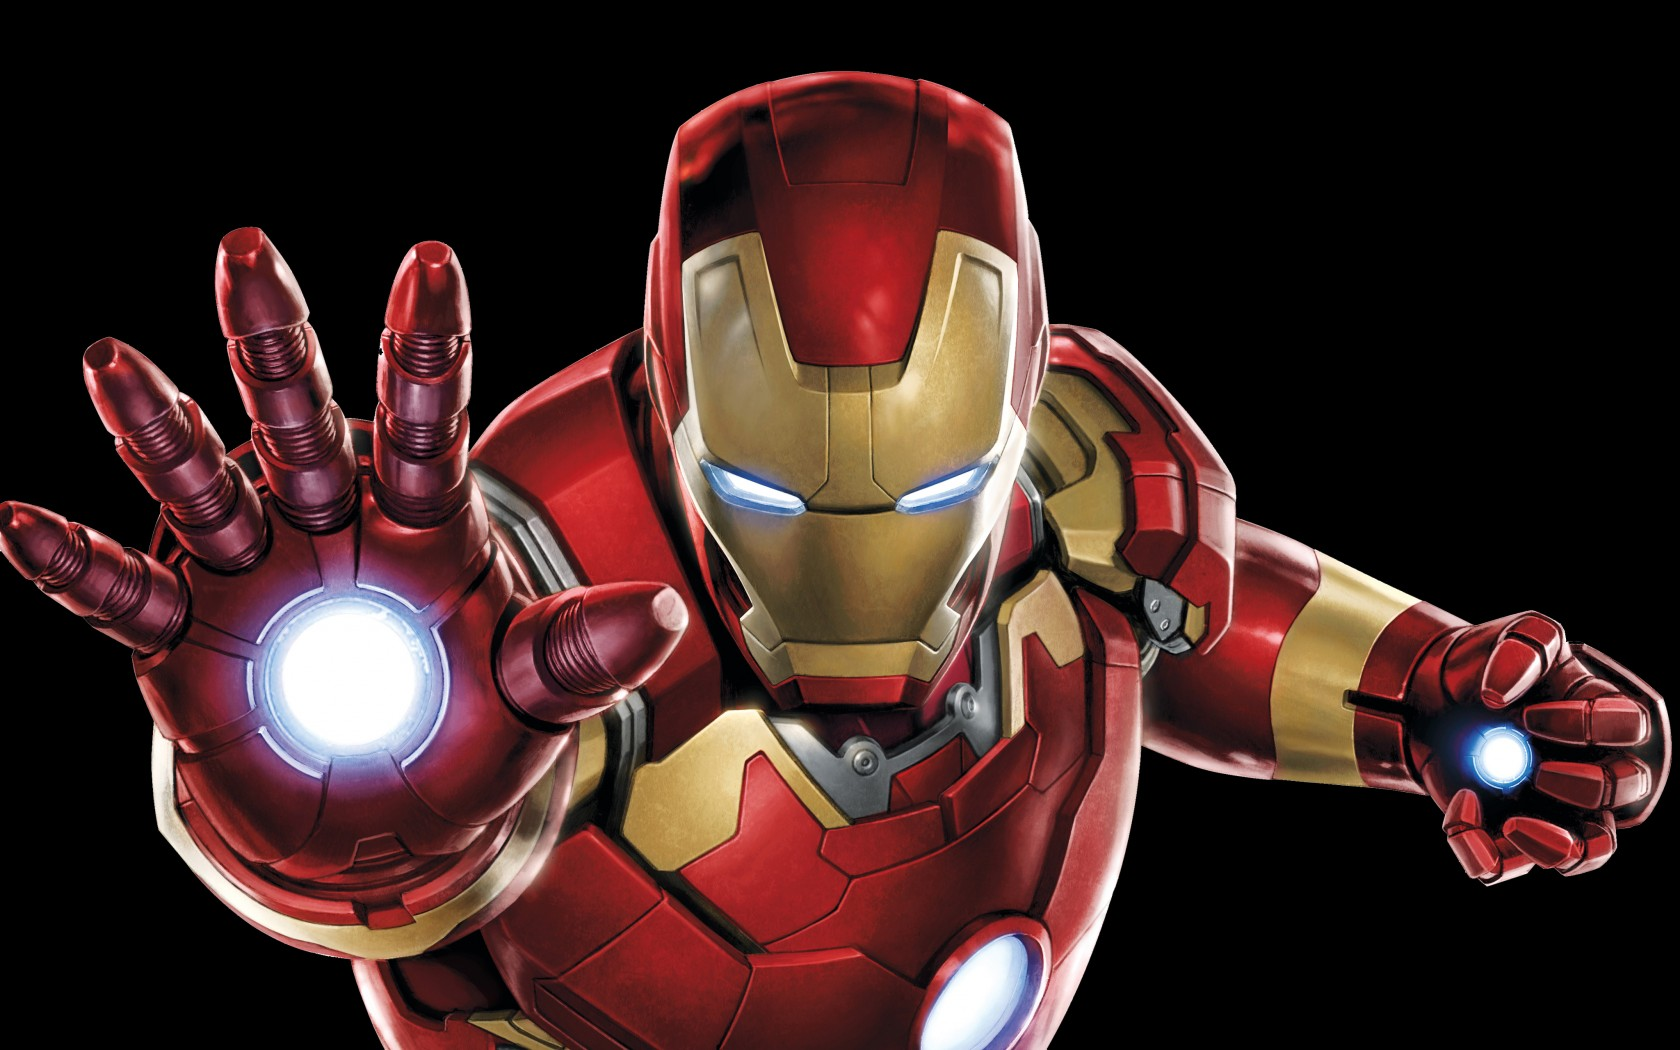 3d Superhero Wallpaper For Android Iron Man 5k Wallpapers Hd Wallpapers Id 23205